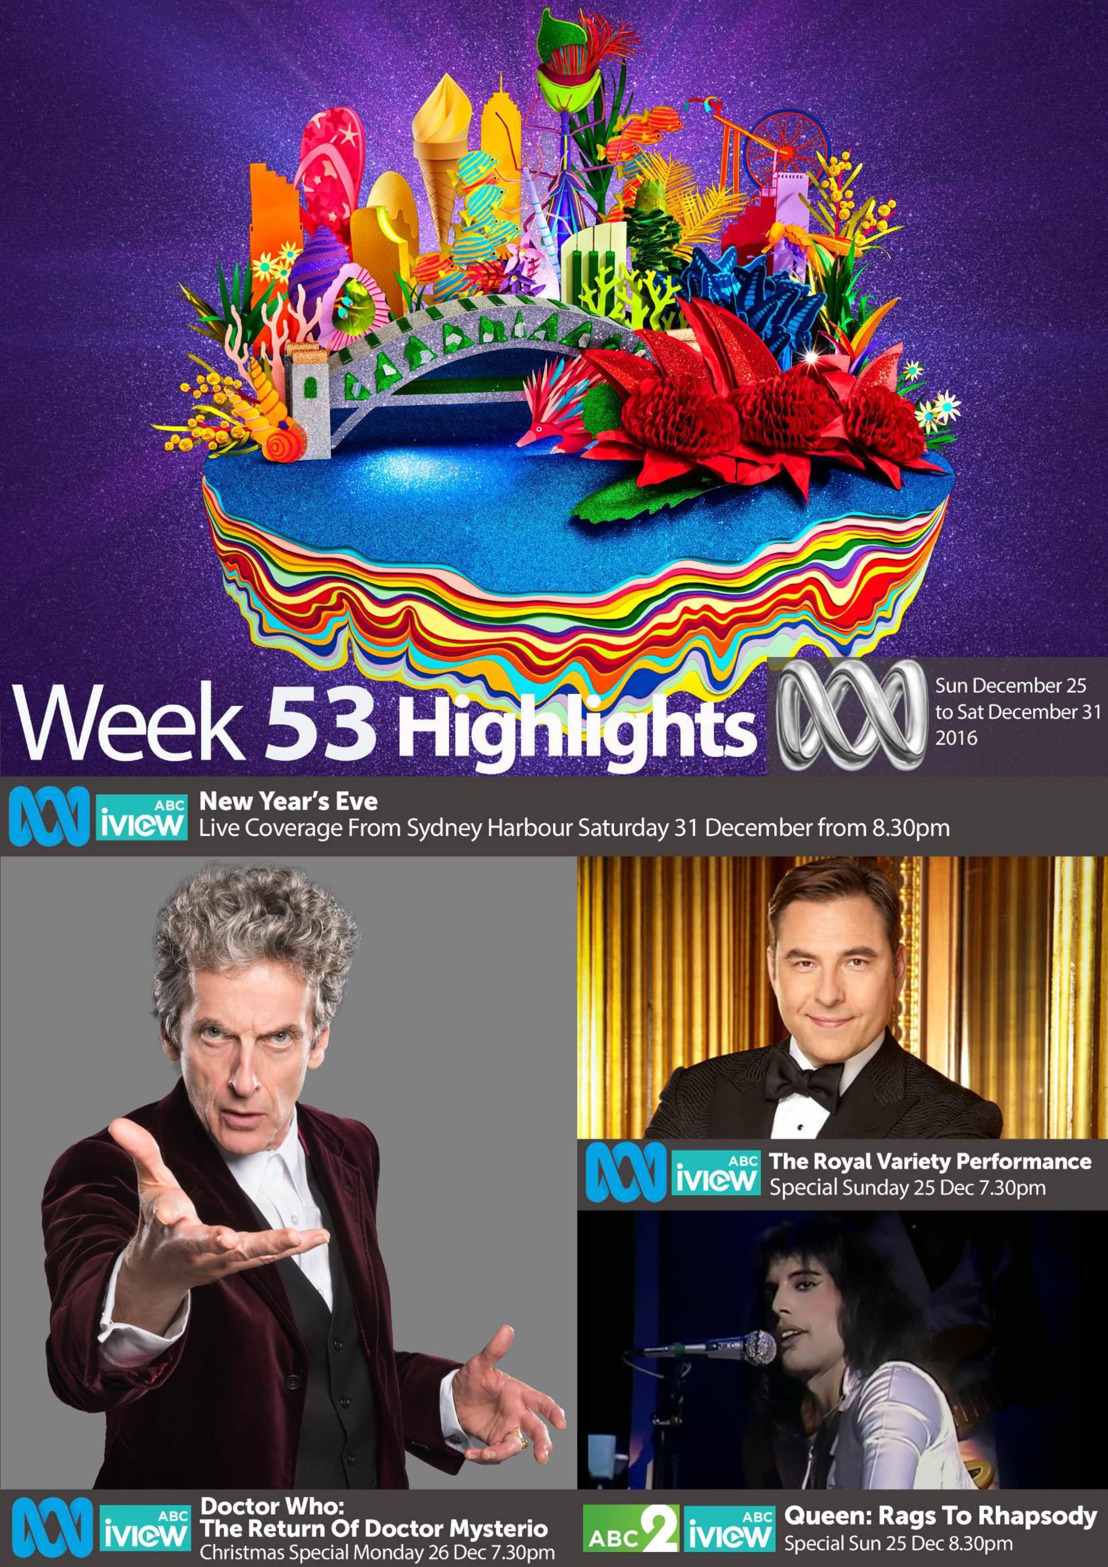 ABC Program Highlights - Week 53